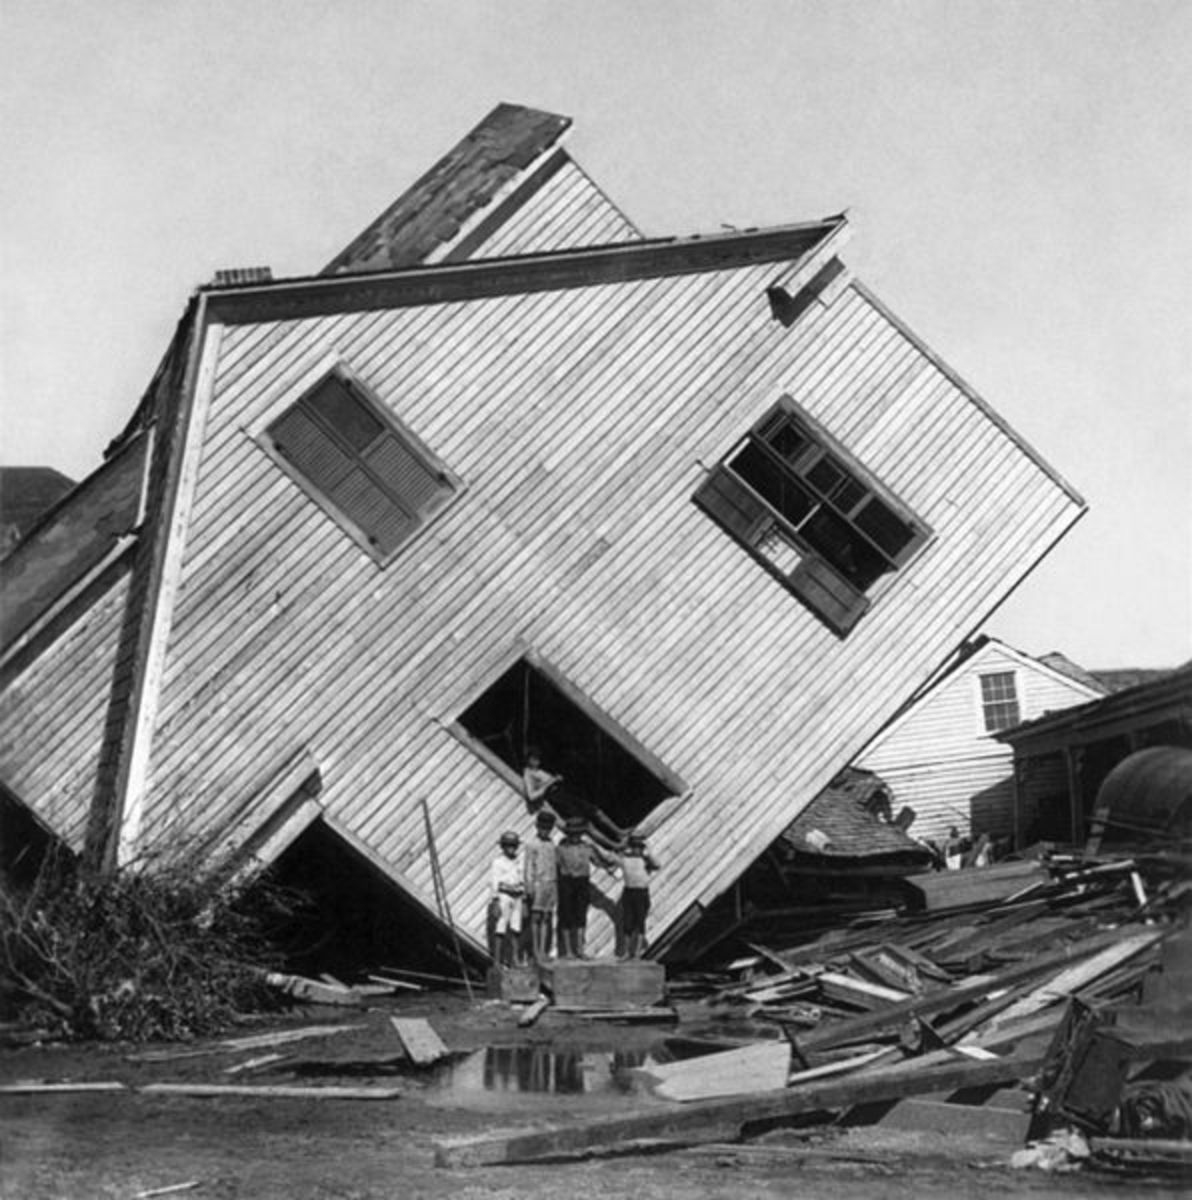 Damage from the 1900 Galveston Hurricane, one of the deadliest hurricanes in history.